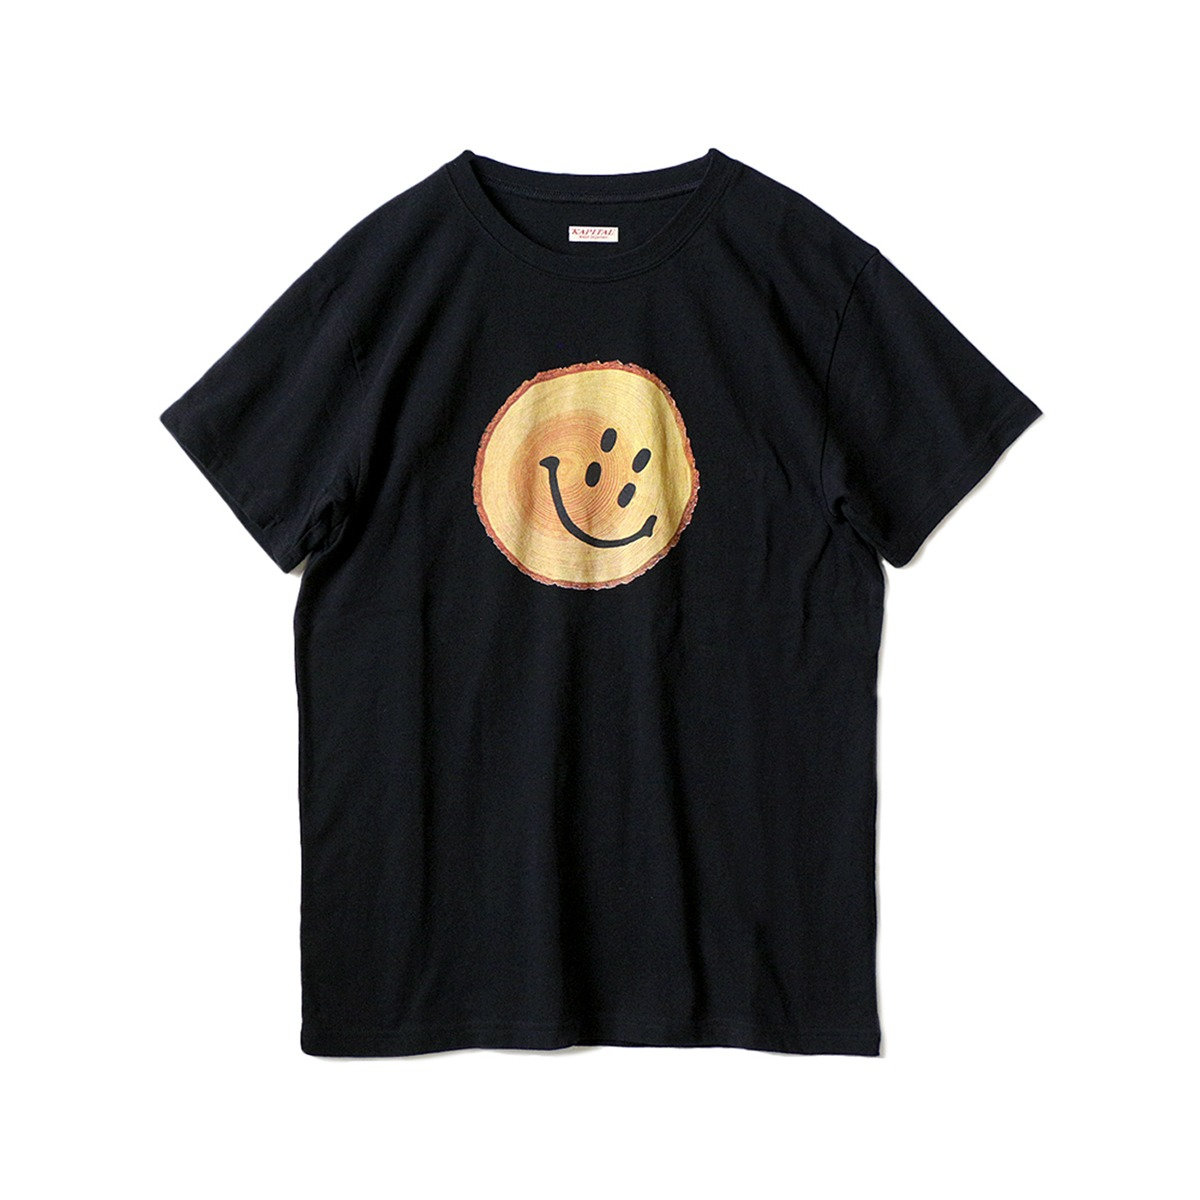 [KAPITAL] 20/-JERSEY CREW T (TRUNK RAIN SMILE) 'BLACK'